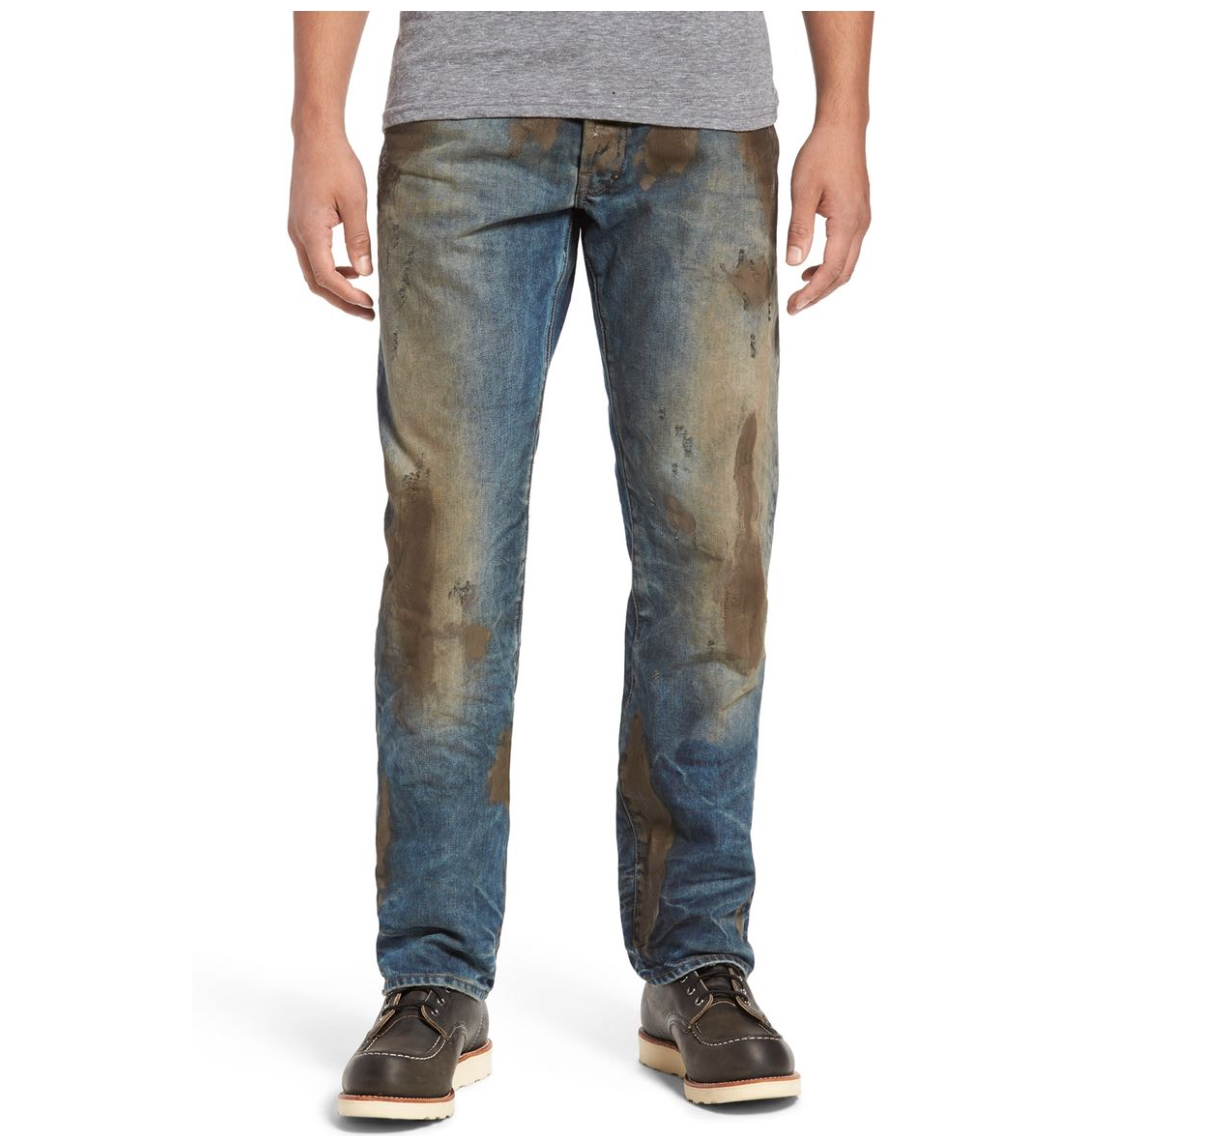 Need A Pair Of Pre-Muddied Jeans For $425? Nordstrom\'s Has You ...